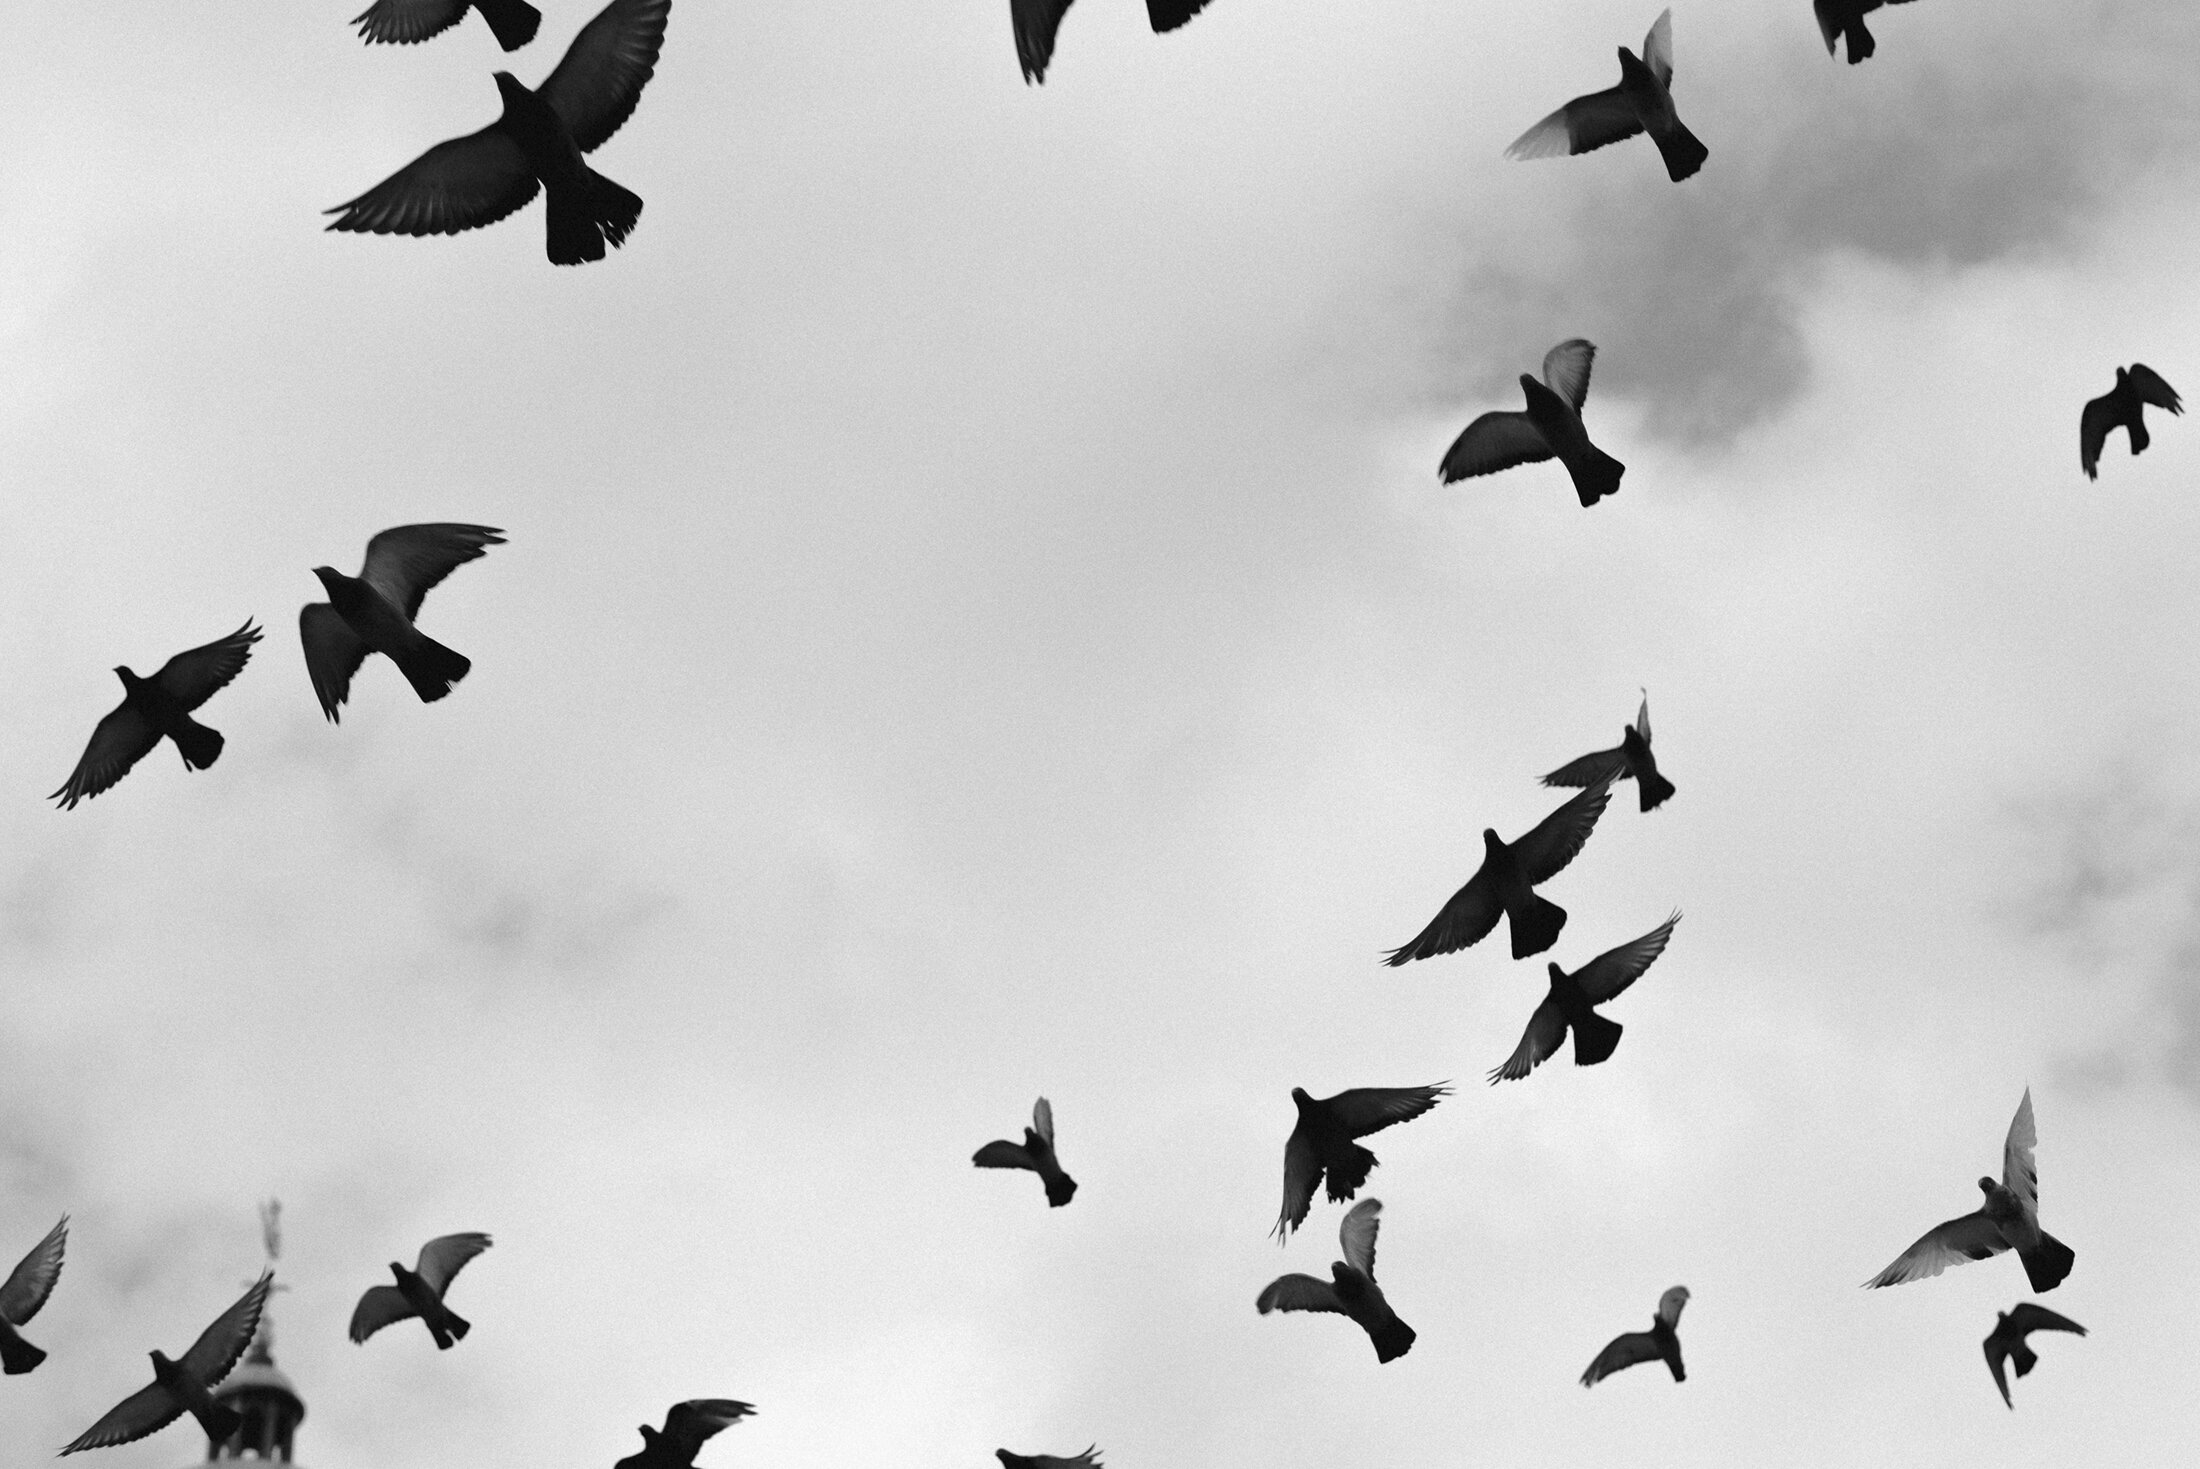 black and white photograph vintage birds flying sky